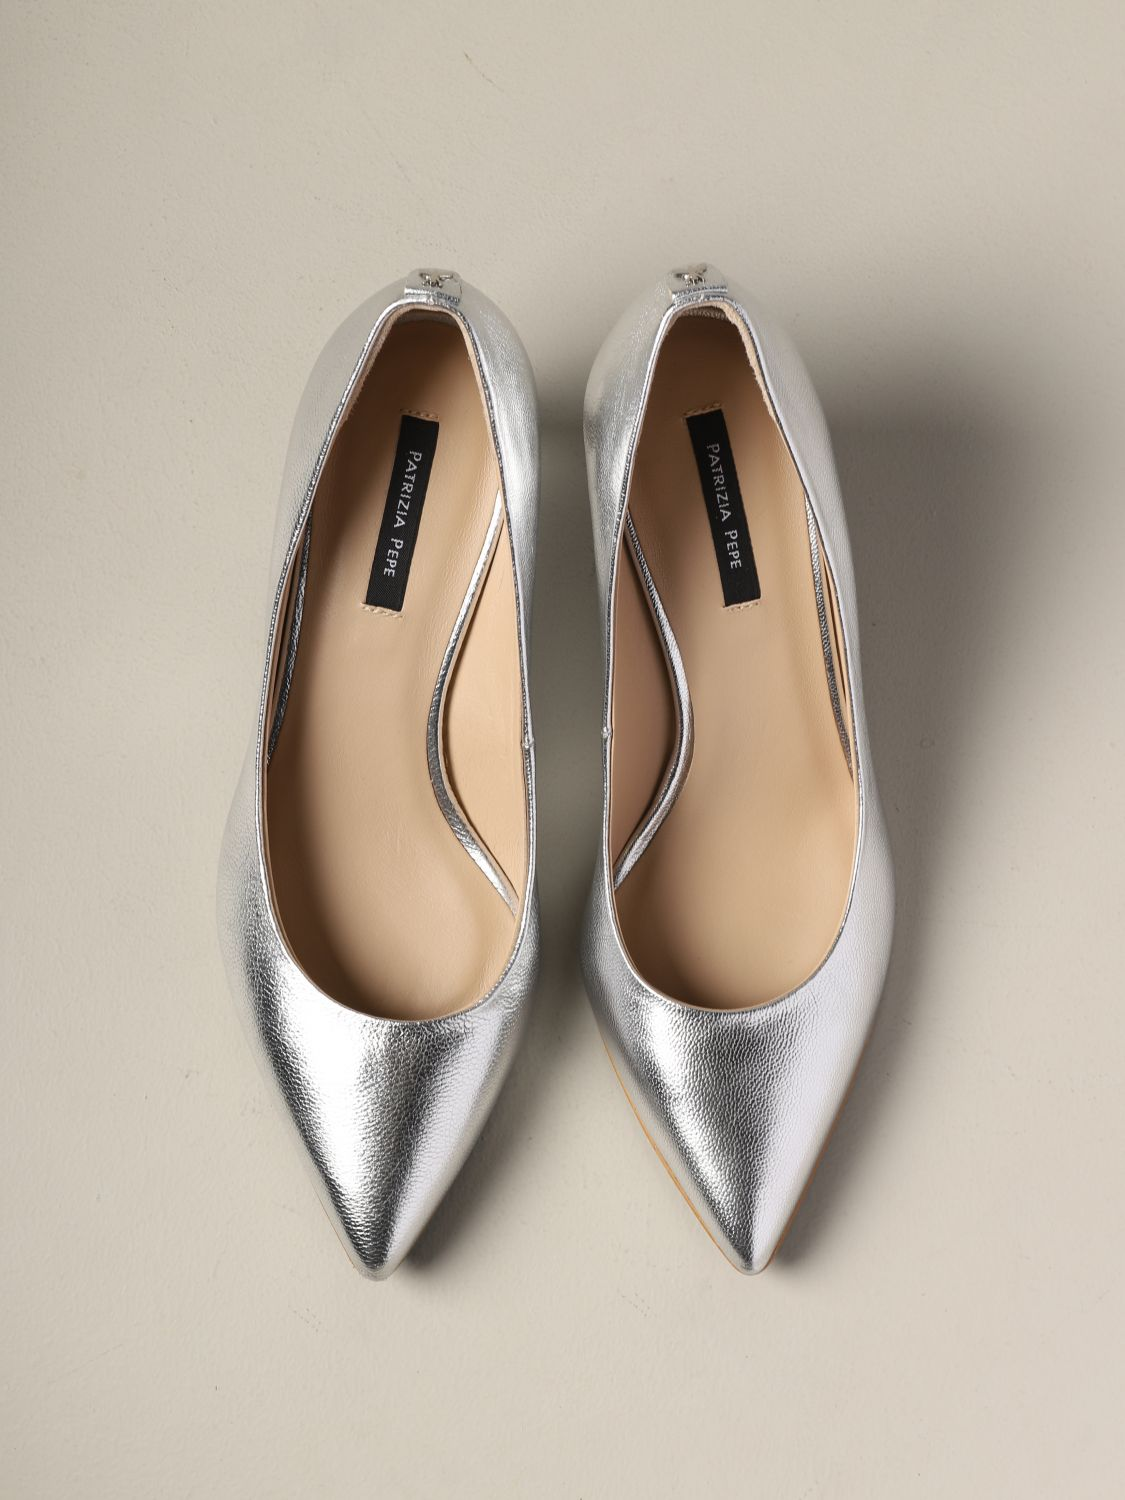 Patrizia Pepe pumps in laminated leather silver 3